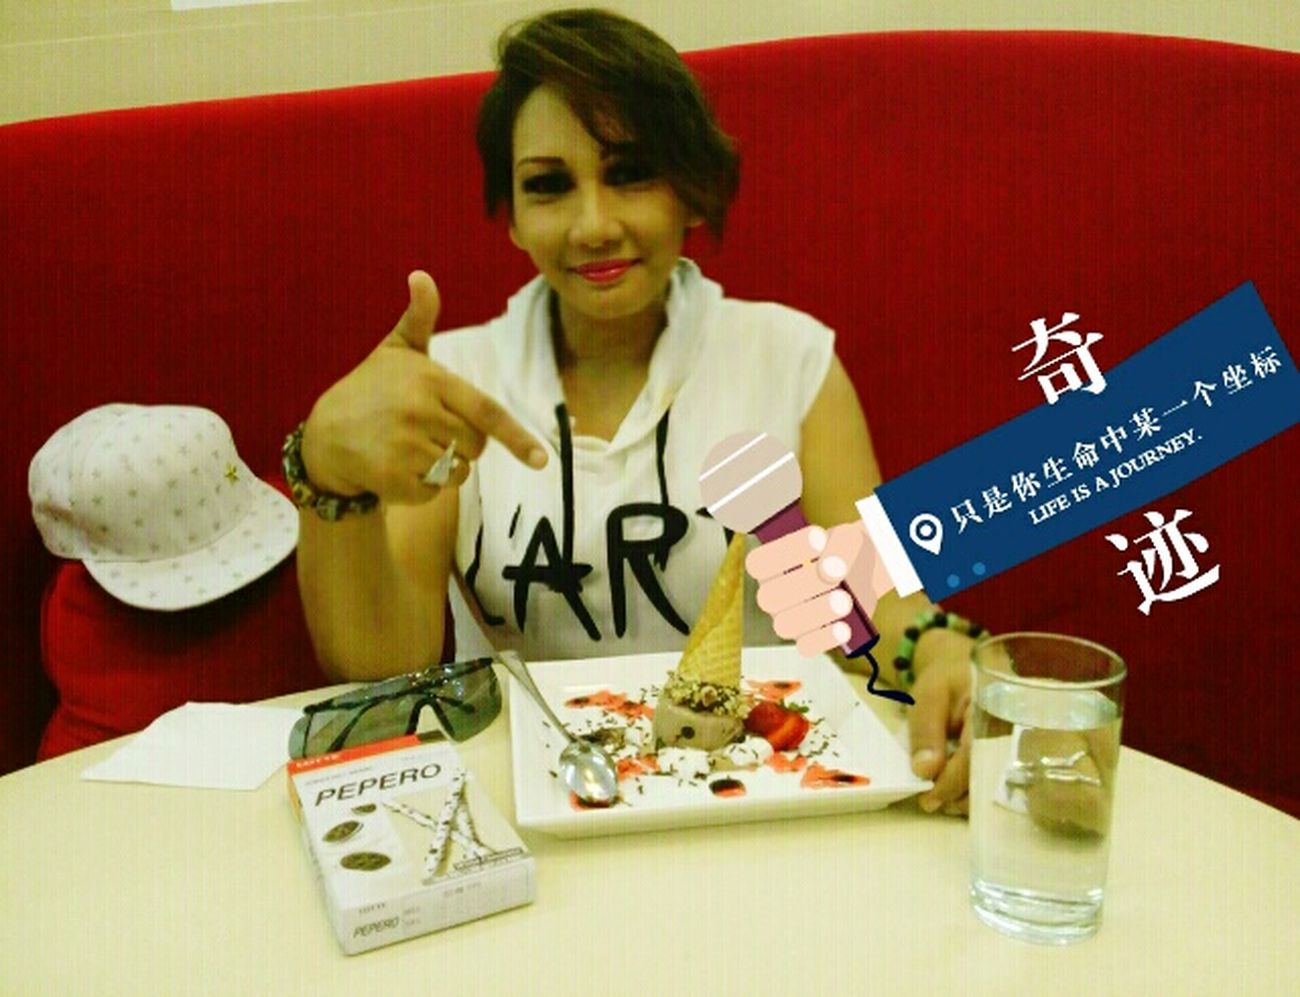 Wowww..with my lovely PEPEROoo White cookie..its Harmony of crunchy cookies and white chocolate.. And its special time with..????? Sweet Moments Hangoutwithfriends Thats Me ♥ How You Celebrate HolidaysHanging Out ✌ Naturalface Icecream🍦 Enjoying Life Selfie ✌ Koreanstyle Beauty In Ordinary Things